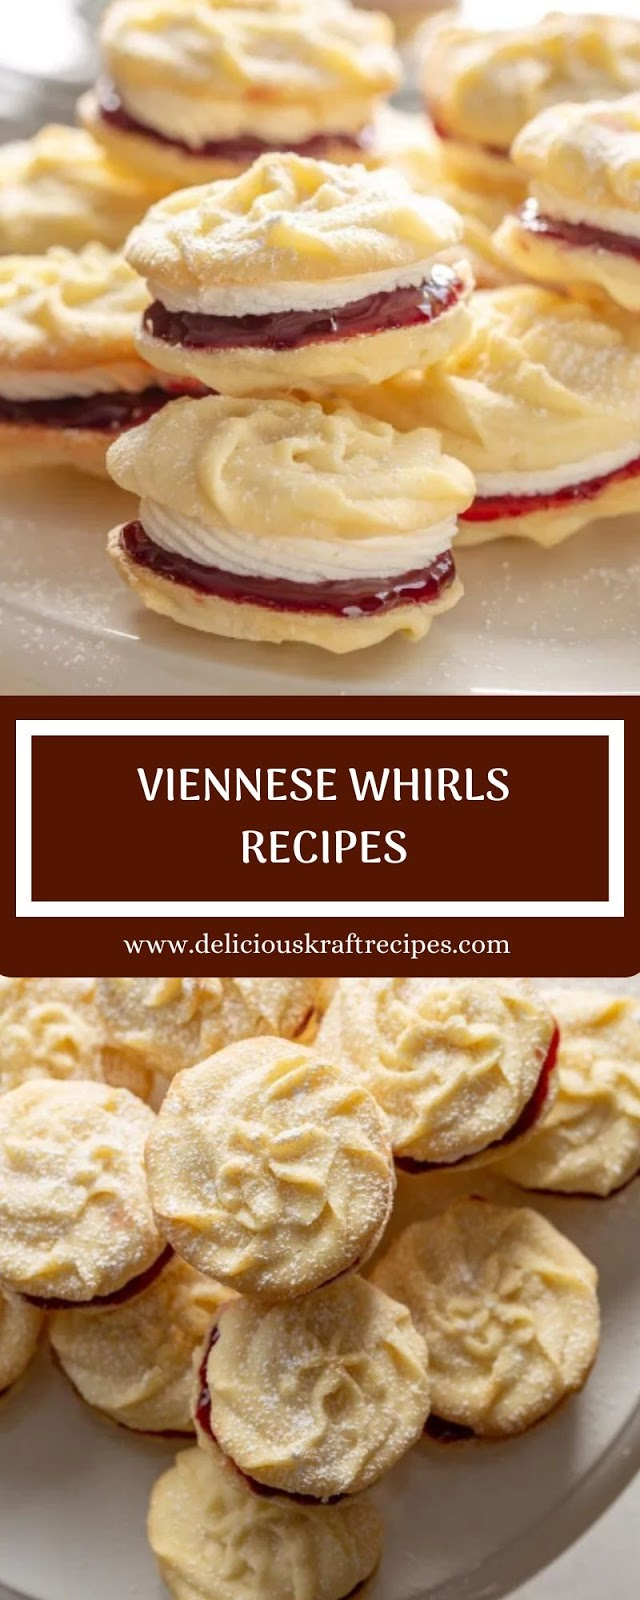 VIENNESE WHIRLS RECIPES